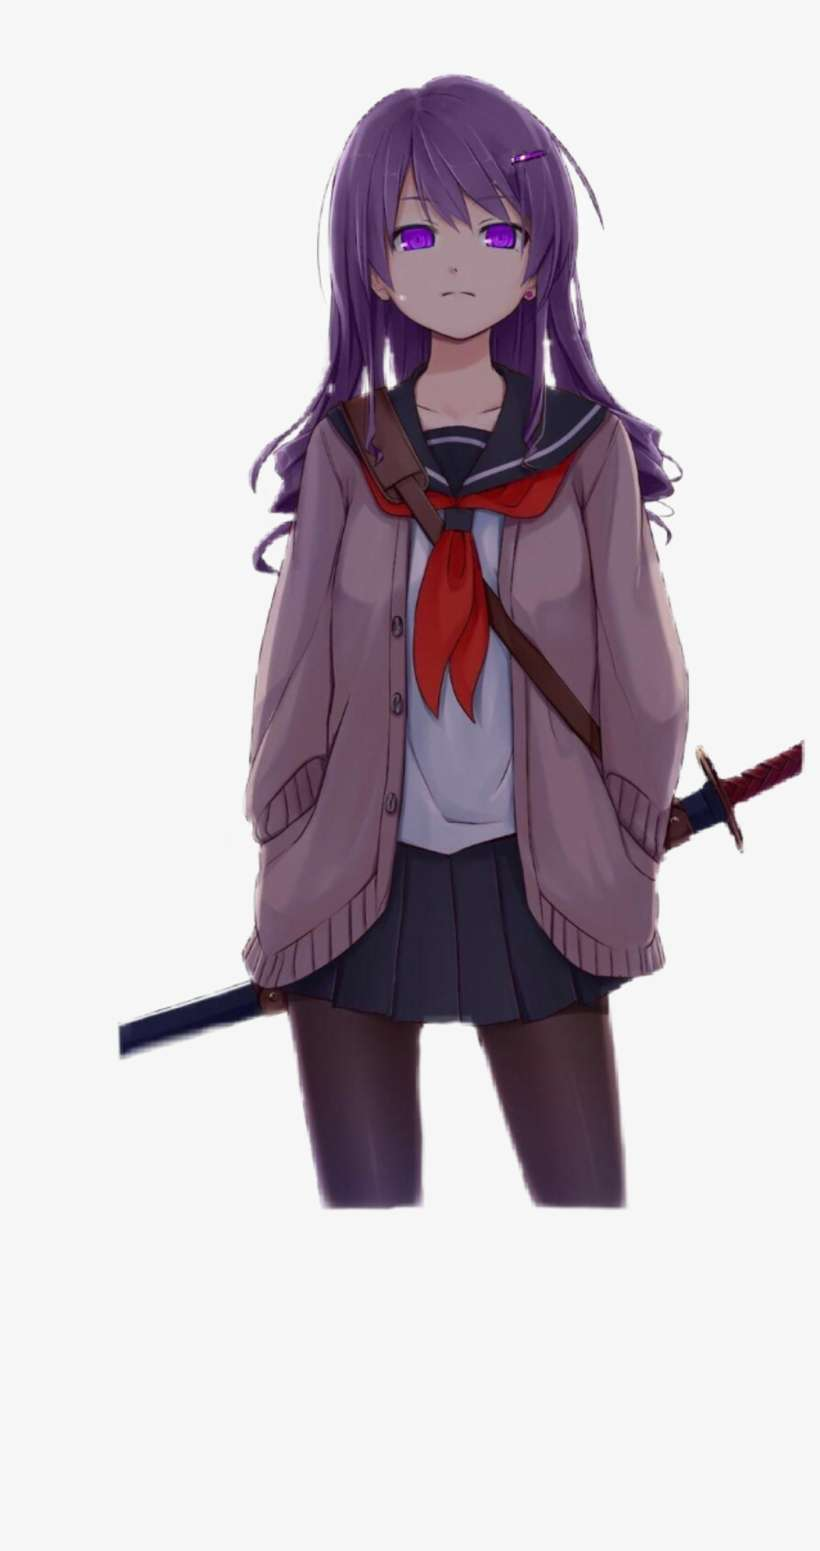 Yuri Sticker - Anime School Girl With Sword PNG Image